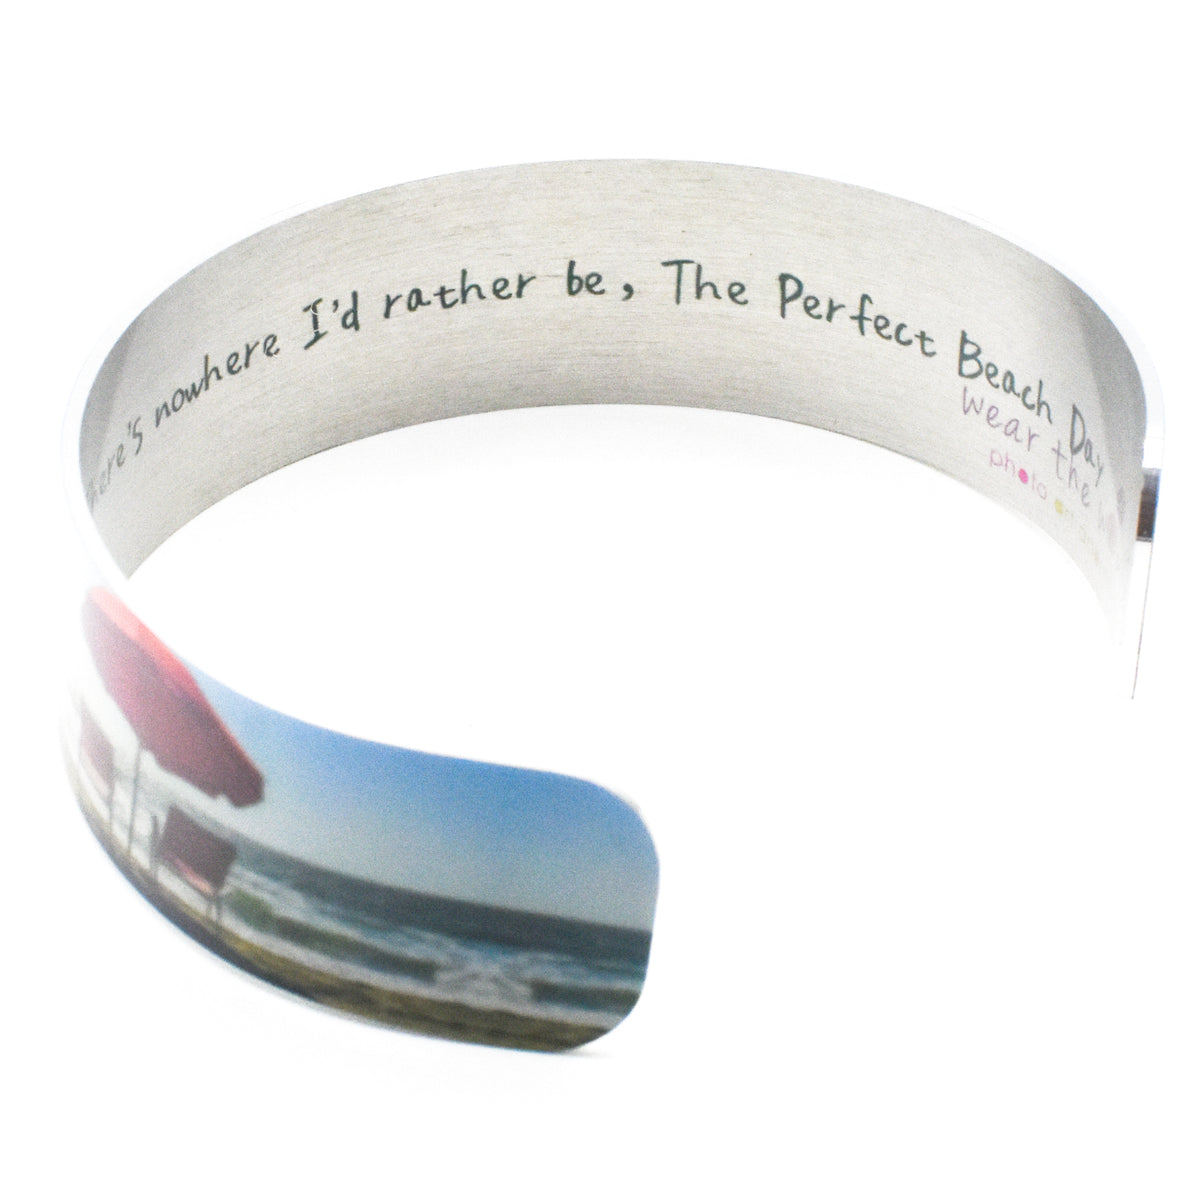 Beach Day Narrow Cuff Bracelet